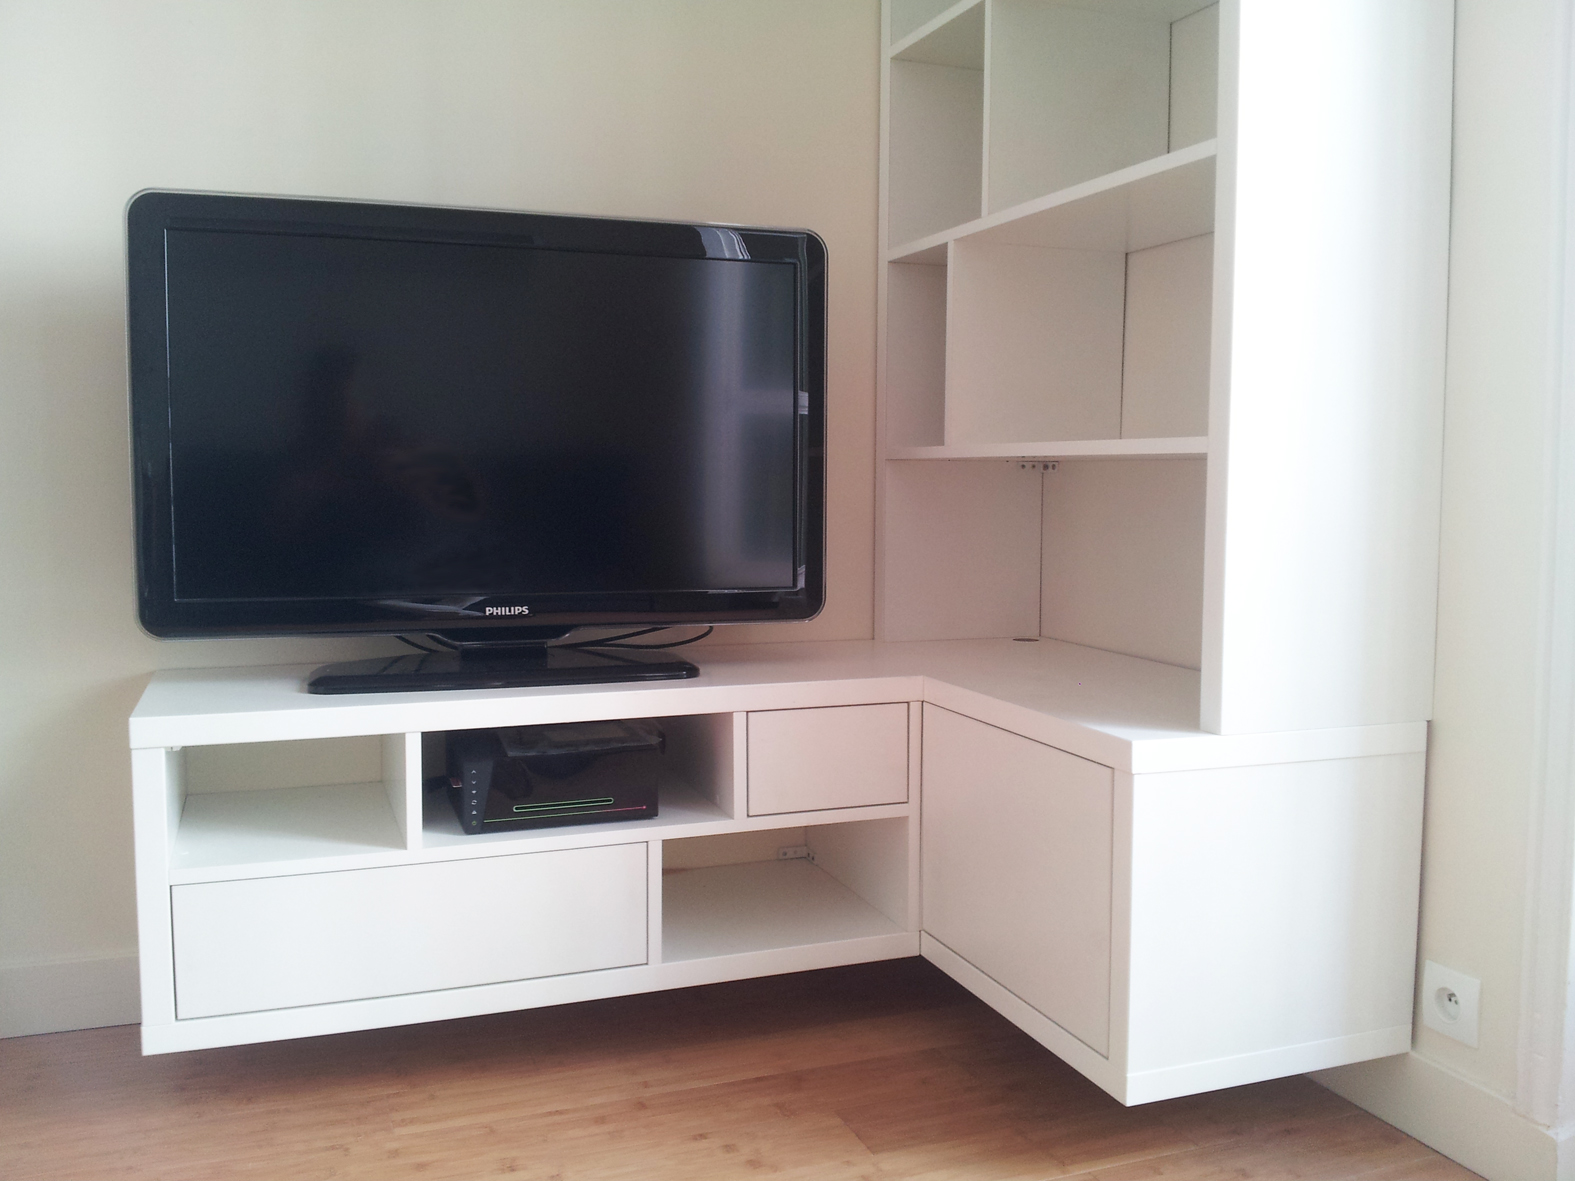 Meuble Tv Philips Trendy Philips Sts With Meuble Tv Philips  # Meuble Tv Pour Barre De Son